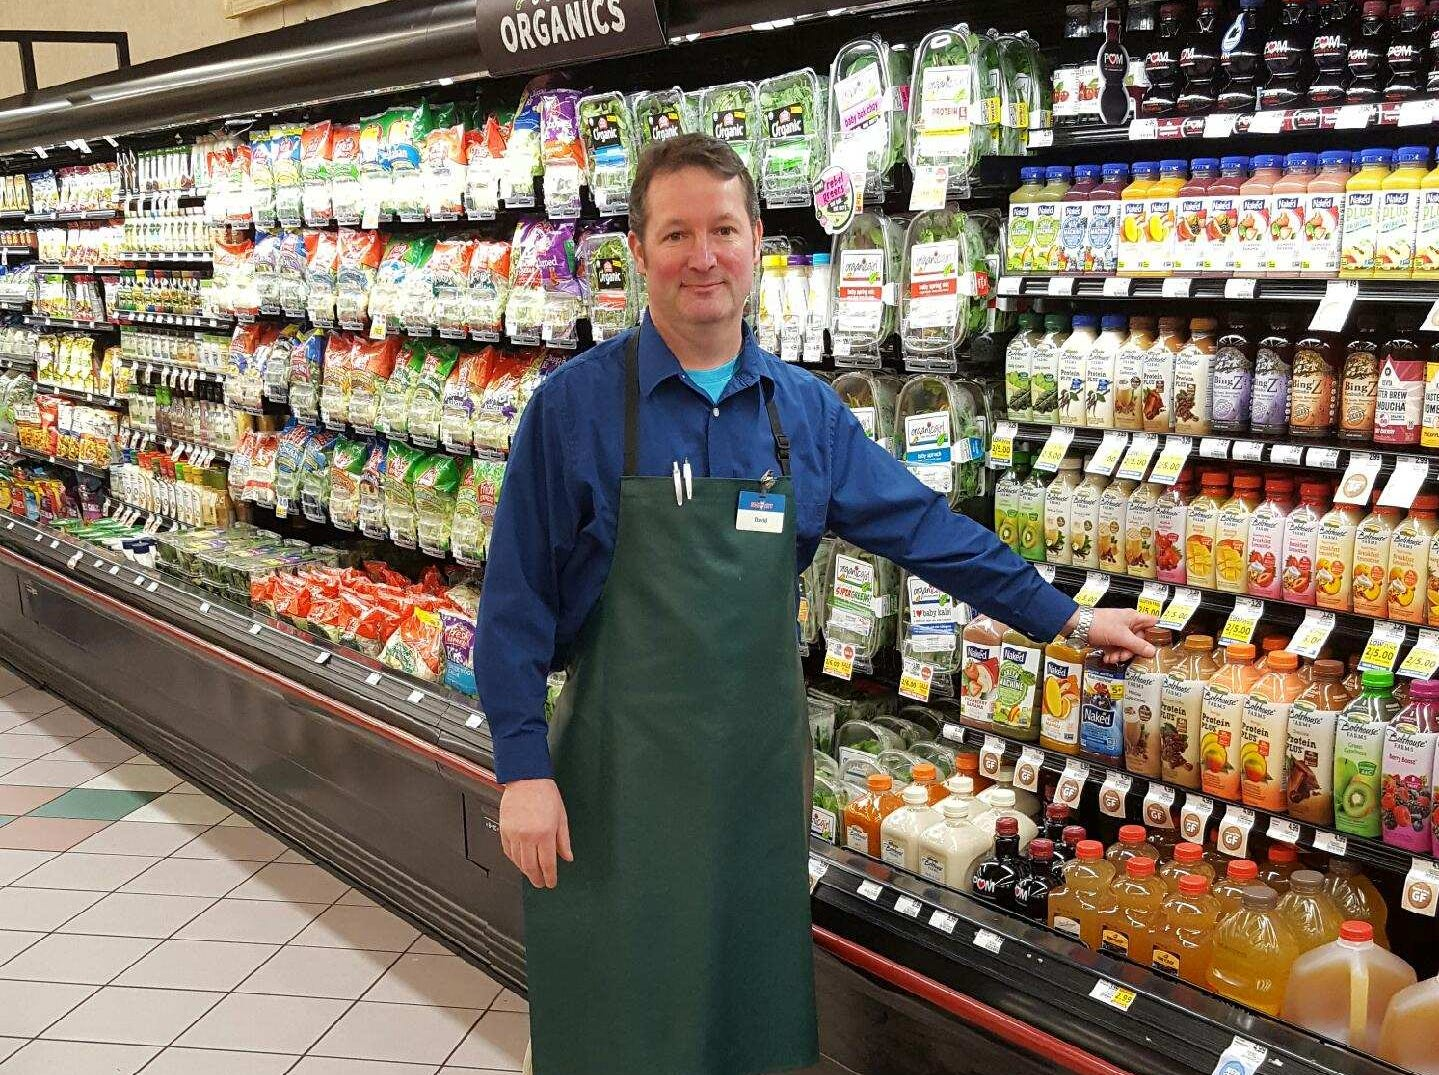 Each year, United Fresh Produce Association recognizes the top 25 produce managers within the industry during their annual convention. David Scarlett, produce manager for Food City's Deane Hill location in Knoxville has been named one of the 25 finalists contending for this year's coveted 2019 Retail Produce Manager of the Year Award.  Five grand-prize winners will be selected from among the field of competitors at the association's June industry convention in Chicago. The candidates are selected from hundreds of nominations submitted by supermarket chains, commissaries and independent retail stores throughout the industry. The award recognizes outstanding achievement in the areas of produce merchandising/marketing, community service and commitment to total customer satisfaction. Scarlett has received a number of national awards. Food City associates were also named award winners in 2005, 2006, 2007, 2008, 2009, 2010, 2011, 2012, 2013, 2014, 2015, 2016, 2017 and 2018 – nine of which, the company boasted a grand-prize winner.